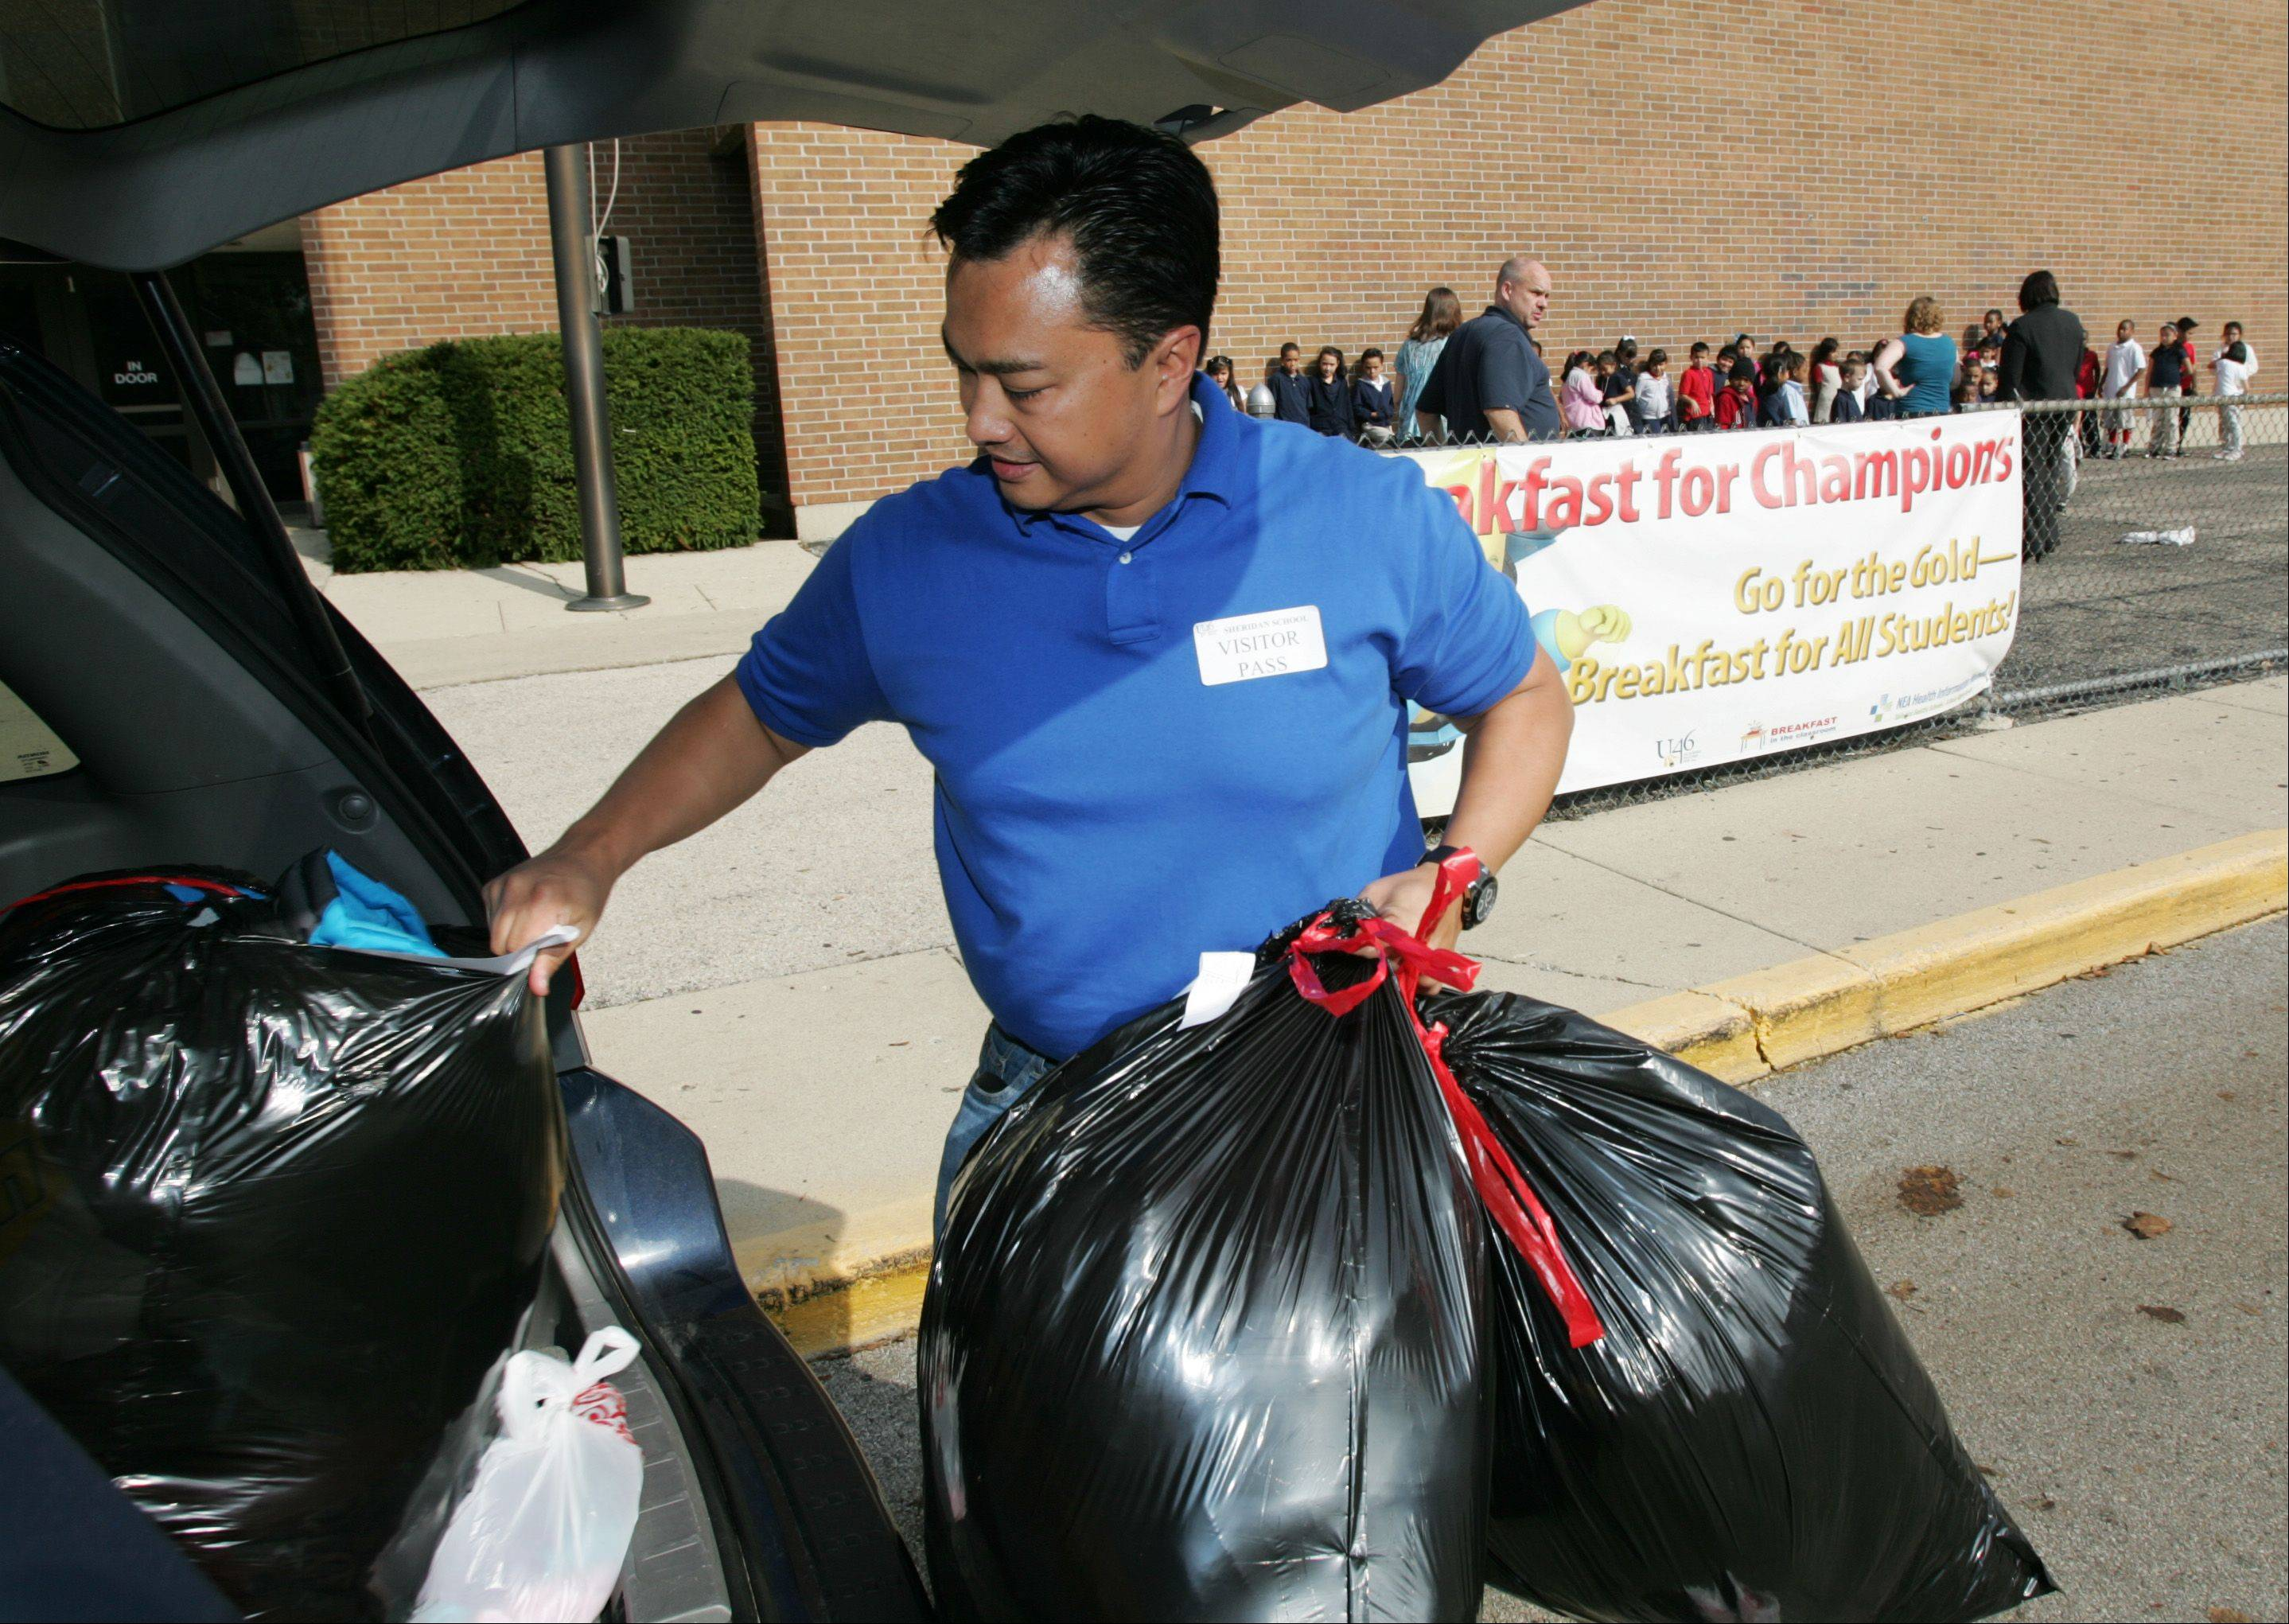 Al DeGuzman hauls out several bags full of new winter coats Wednesday before handing them out to students at Sheridan Elementary in Elgin.